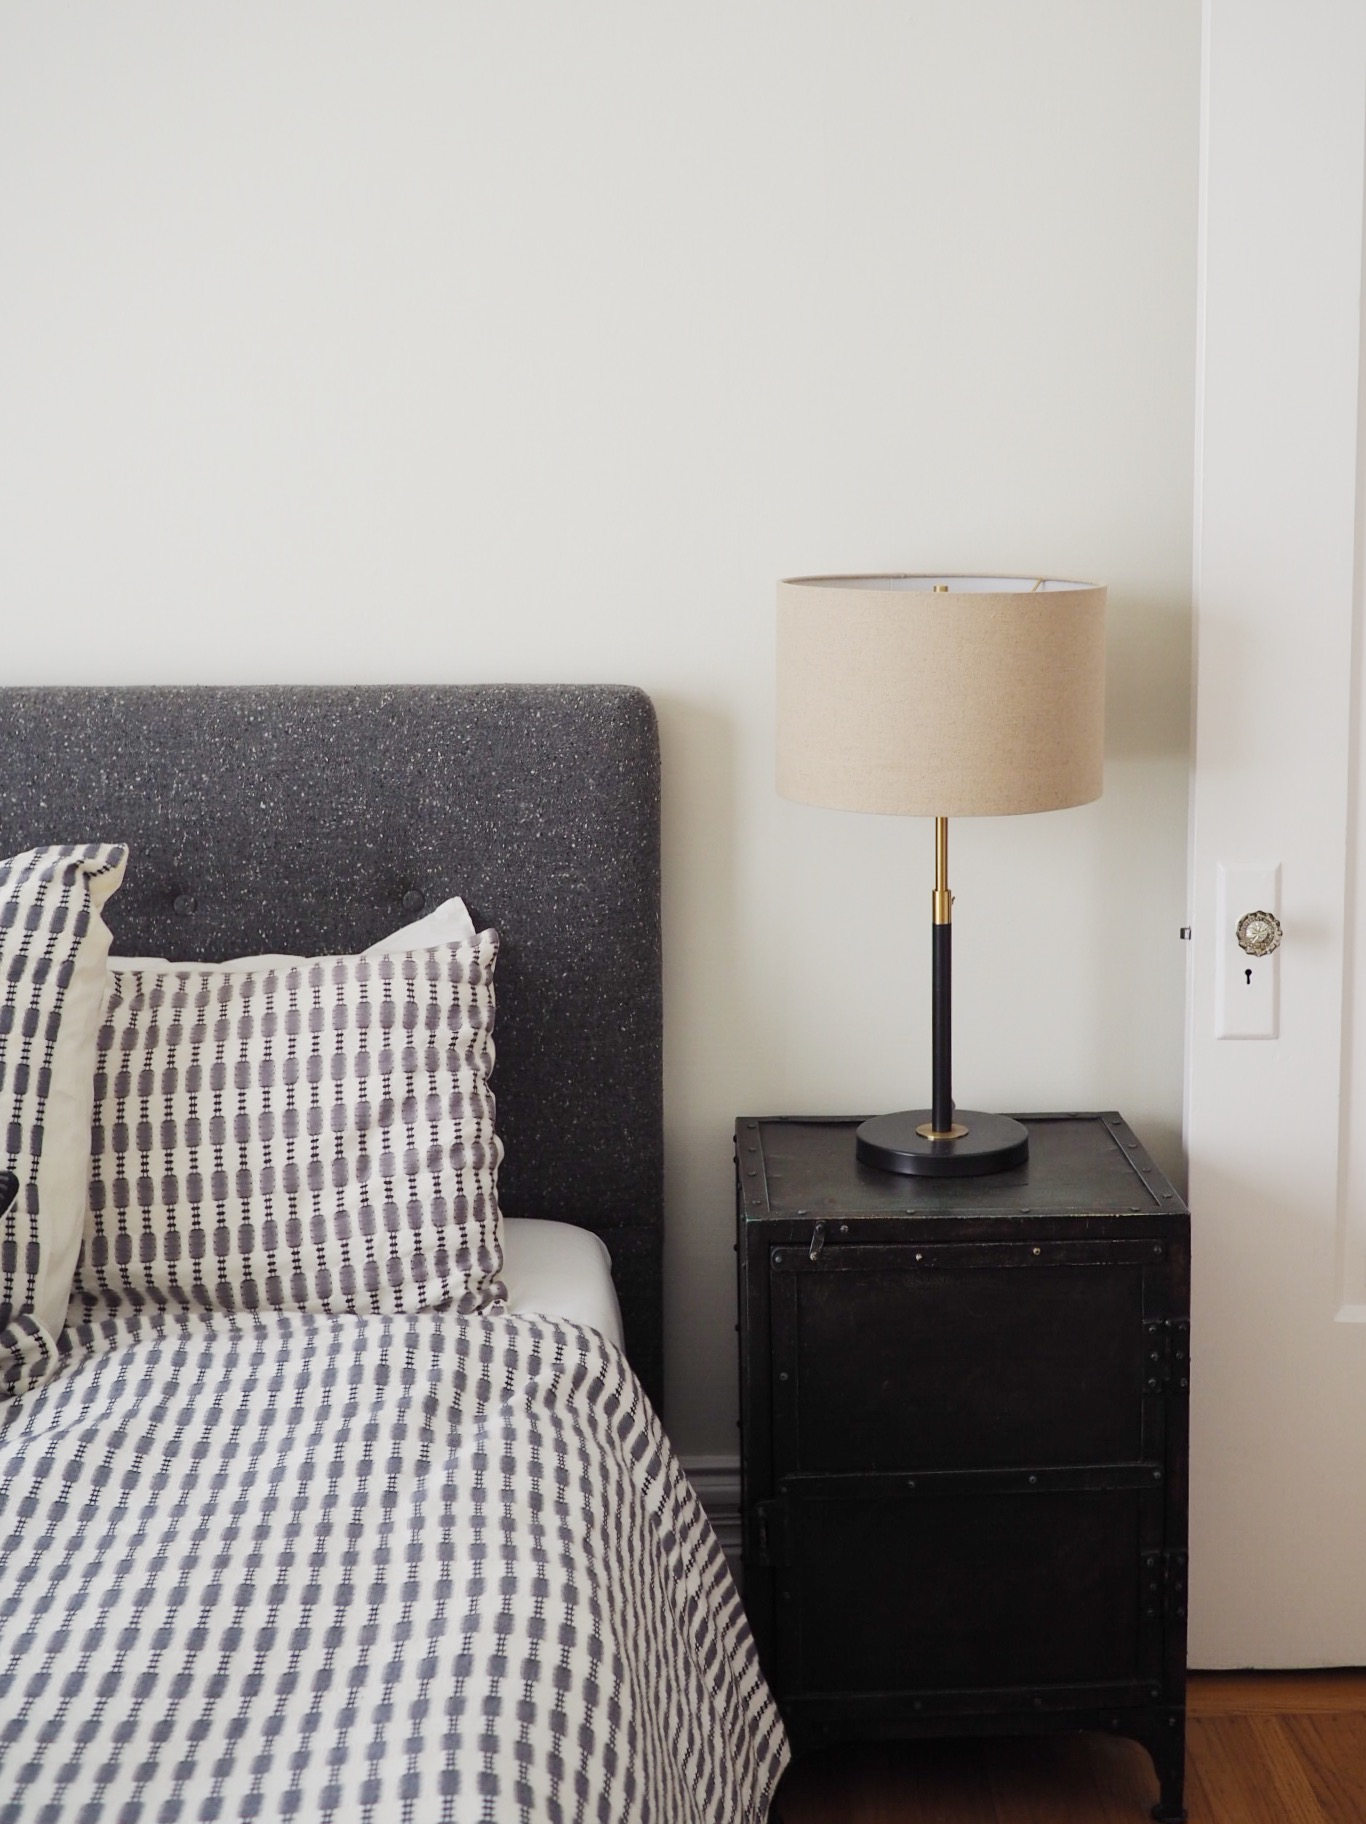 Nightstands: Restoration Hardware ( similar ). Bed:  West Elm . Bedding: West elm ( similar ). Lamp:  West Elm .